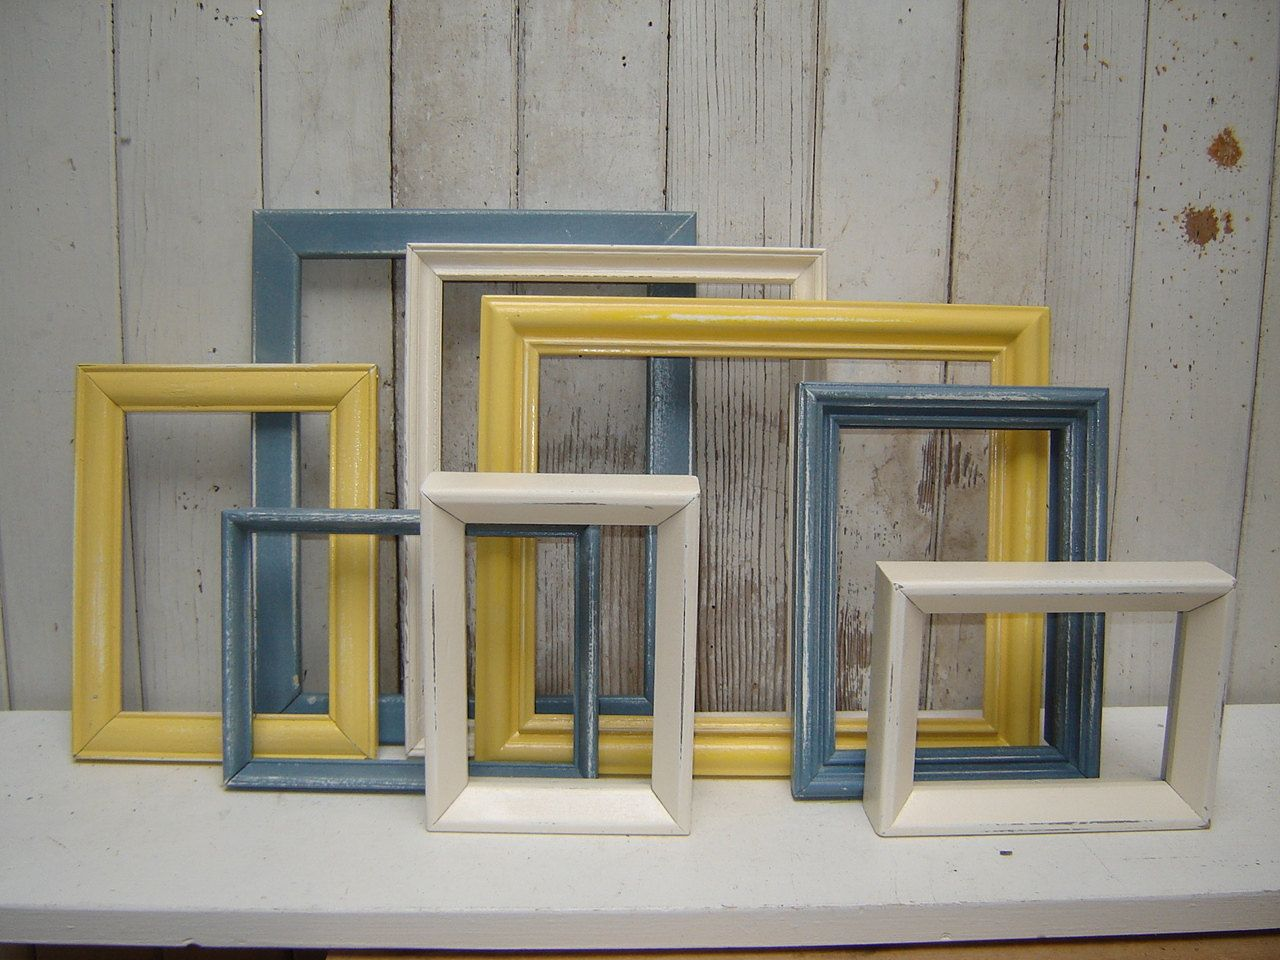 Painted frame set collection 8 picture frames yellow slate blue painted frame set collection 8 picture frames yellow slate blue and white picture frames wall gallery jeuxipadfo Gallery